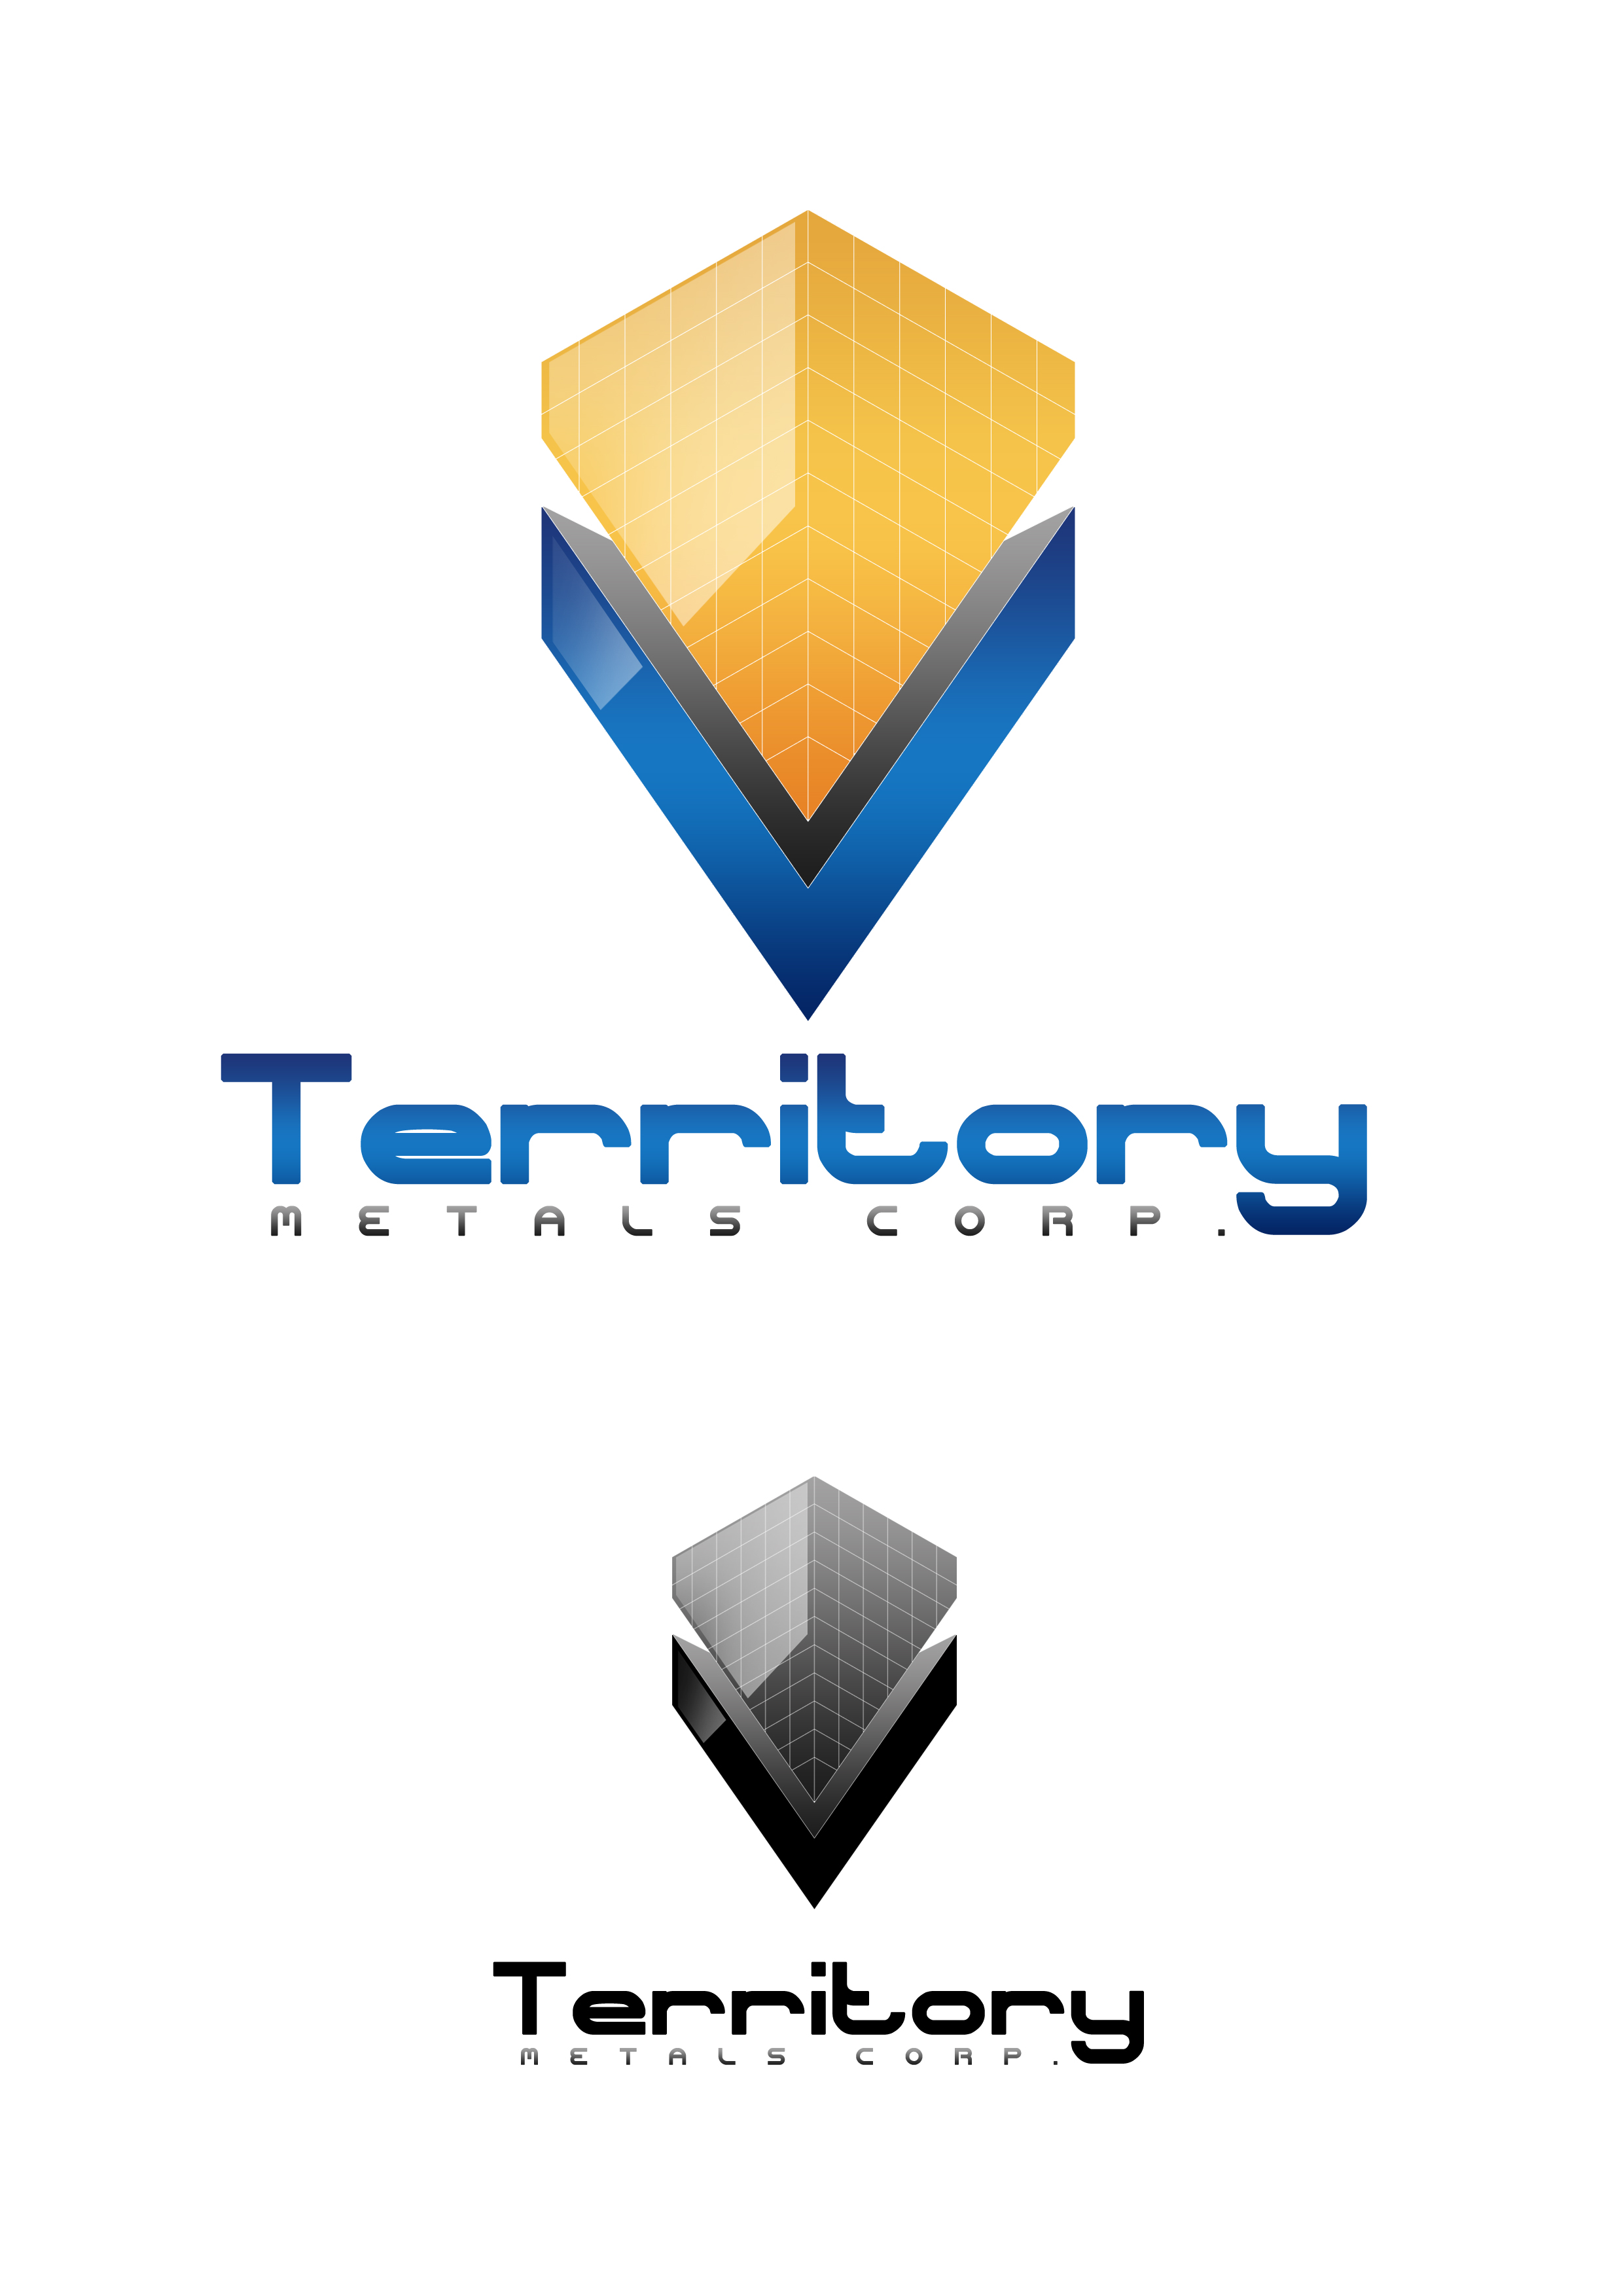 Logo Design by JSDESIGNGROUP - Entry No. 243 in the Logo Design Contest Unique Logo Design Wanted for Territory Metals Corp..